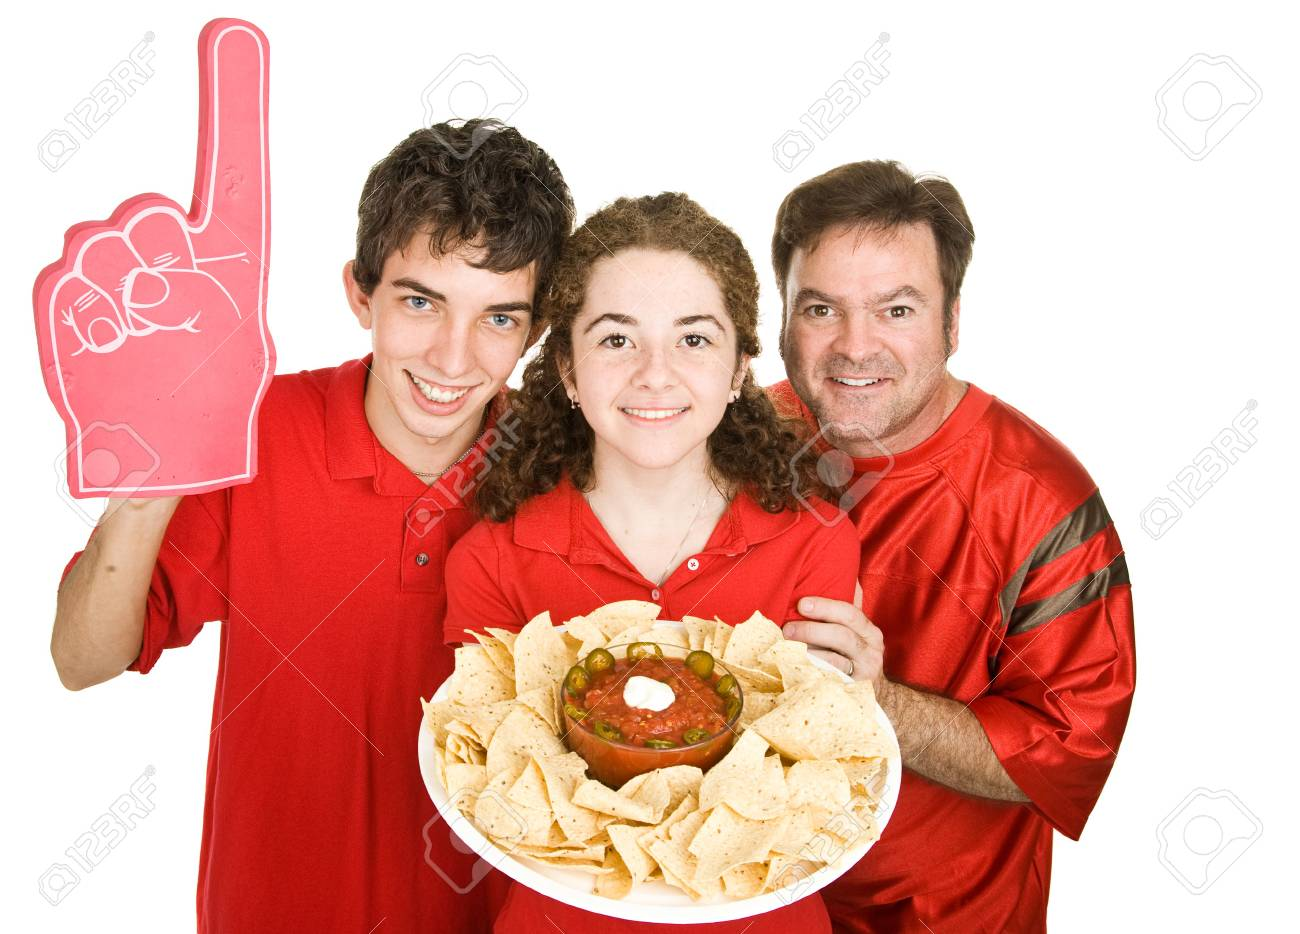 Three football fans enjoying chips and salsa during half time.  Isolated on white. Stock Photo - 3712013